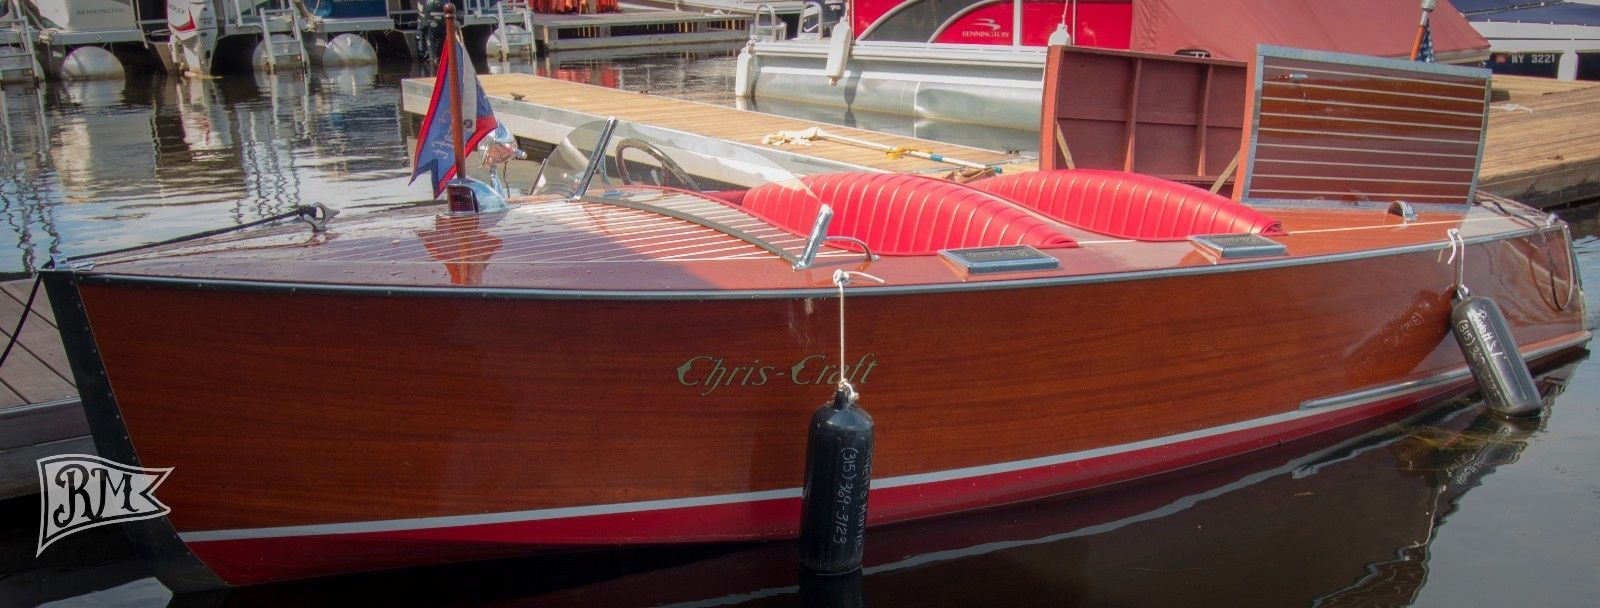 1937 Chris Craft 17 Deluxe Runabout Wooden Boats Runabout Boat